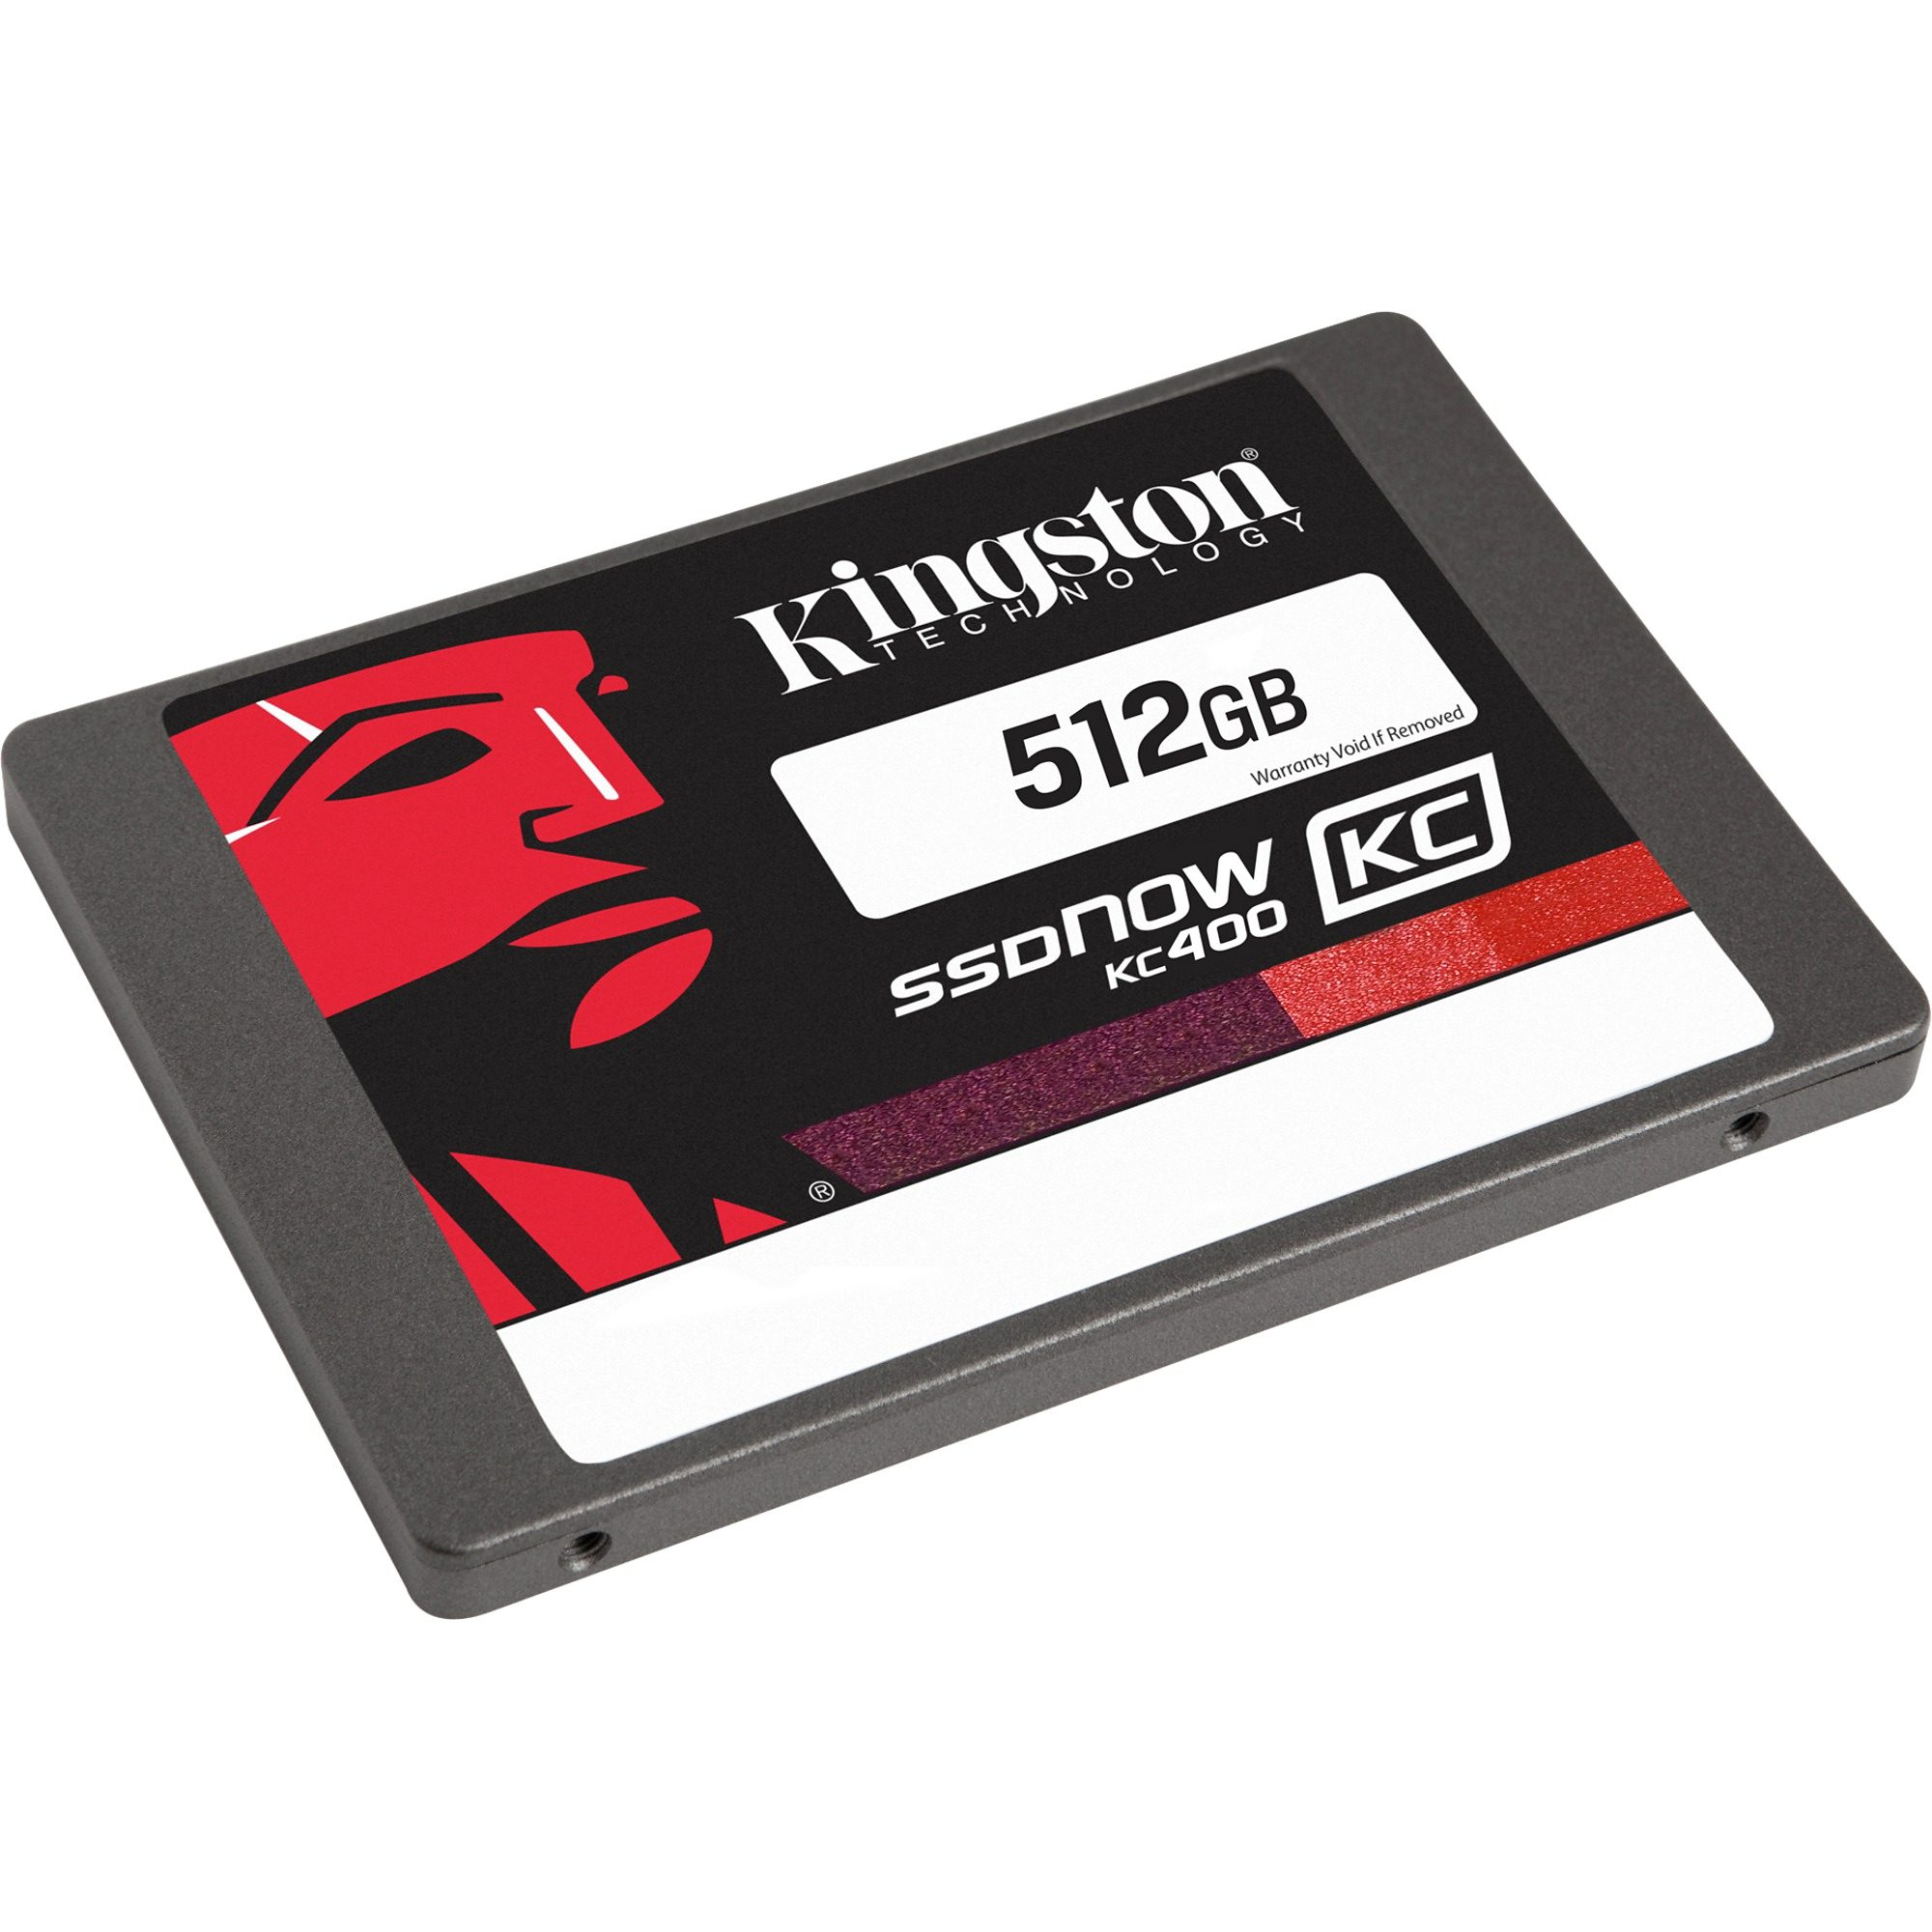 Kingston Solid State Drive »SKC400S3B7A/512G 512 GB Upgrade Bundle Kit«